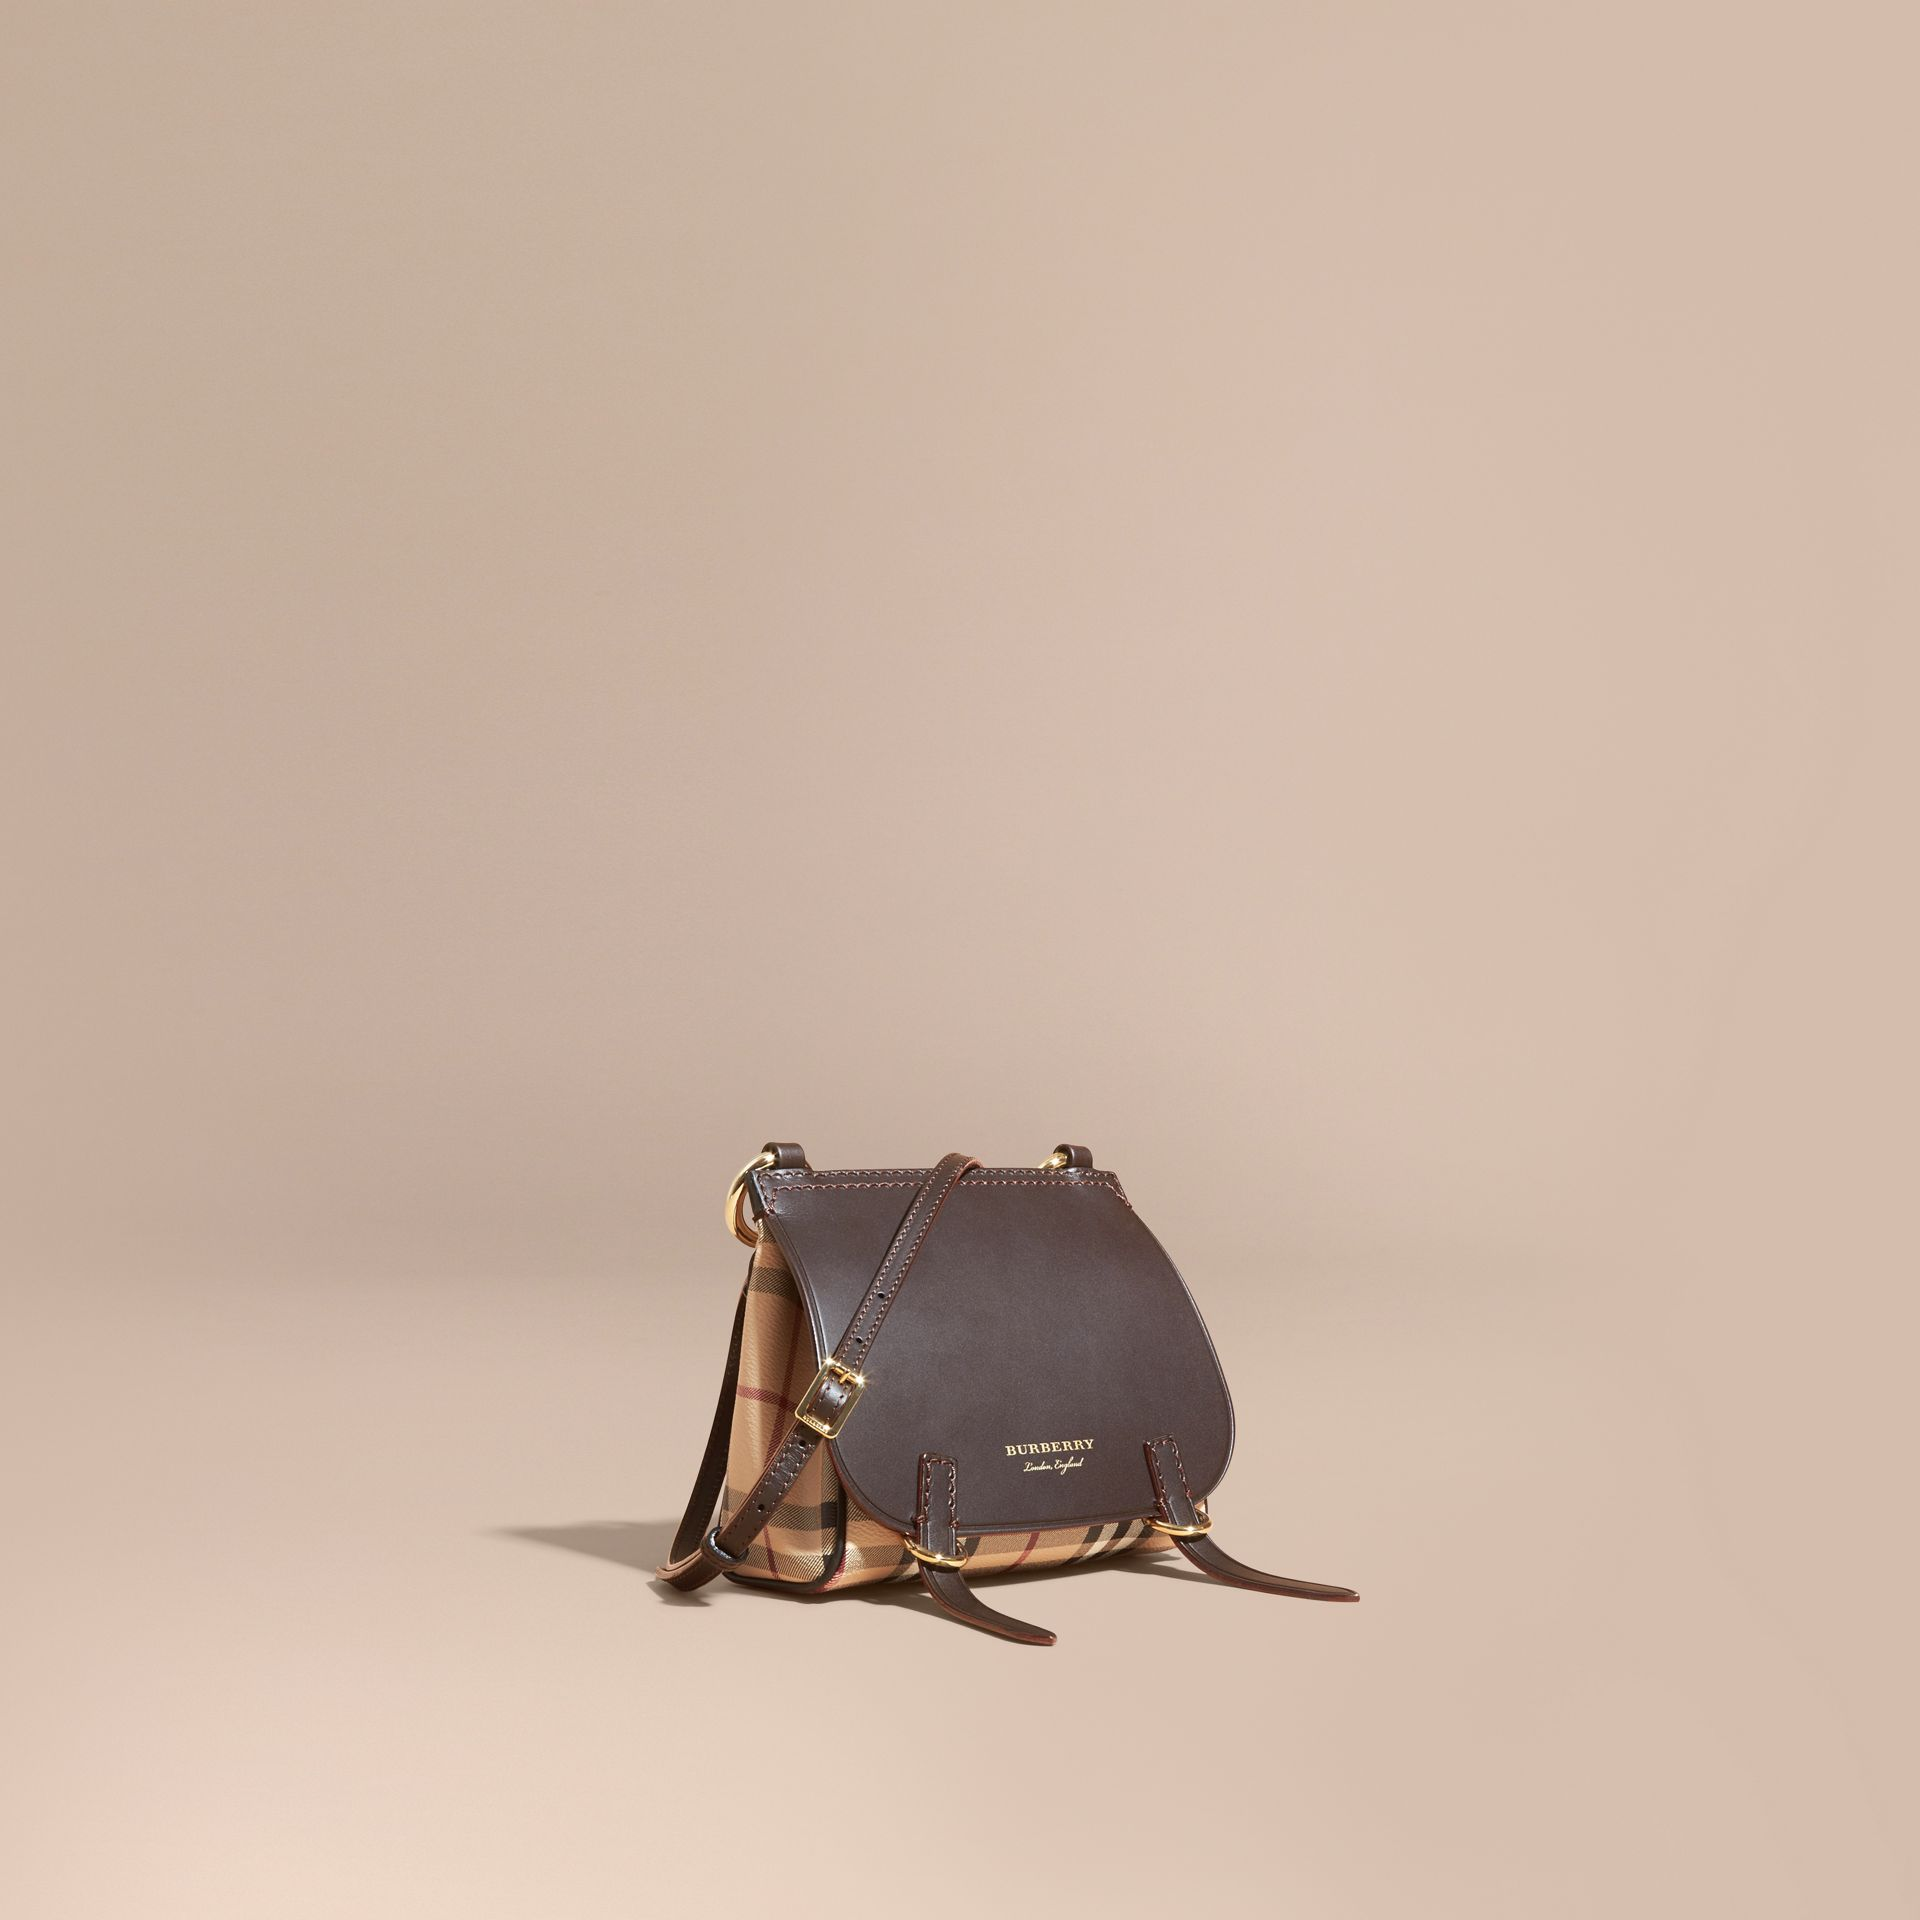 Sac The Baby Bridle en cuir et tissu Haymarket check (Marron Girofle Sombre) - Femme | Burberry - photo de la galerie 1